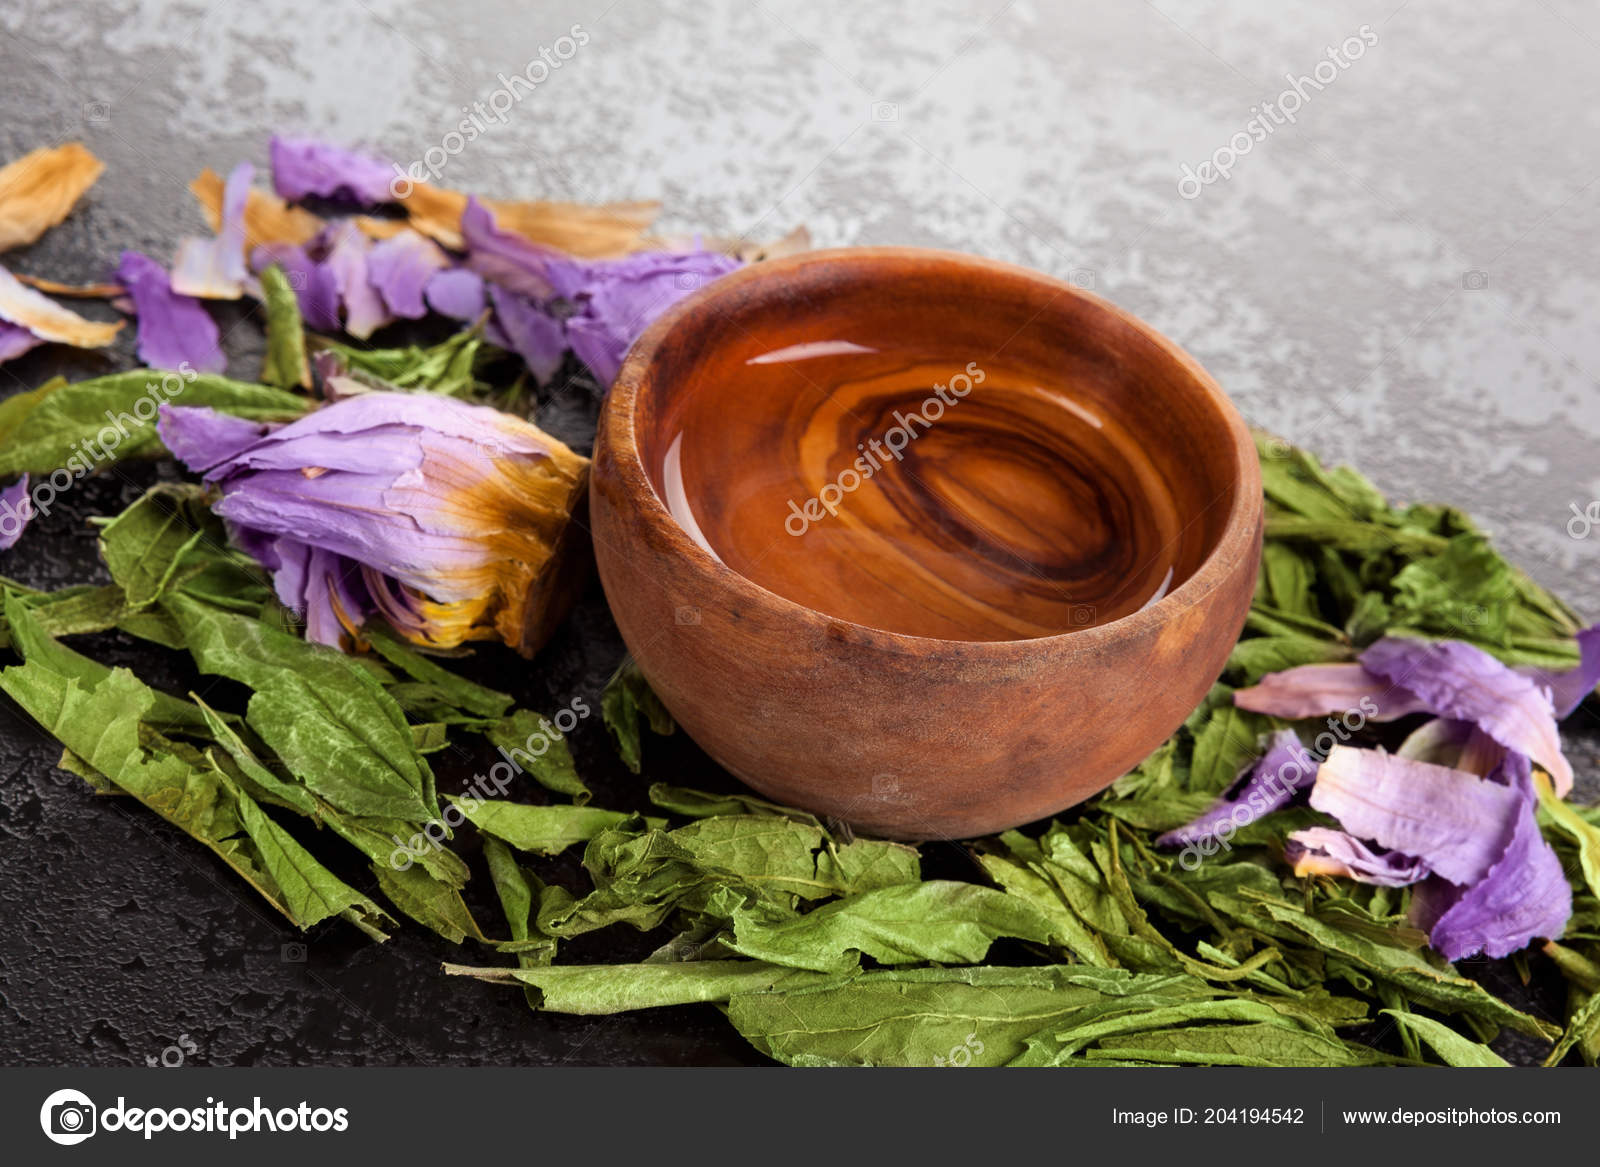 Dried Blue Lotus Flower Dream Herbs Oil Extract Wooden Bowl Stock